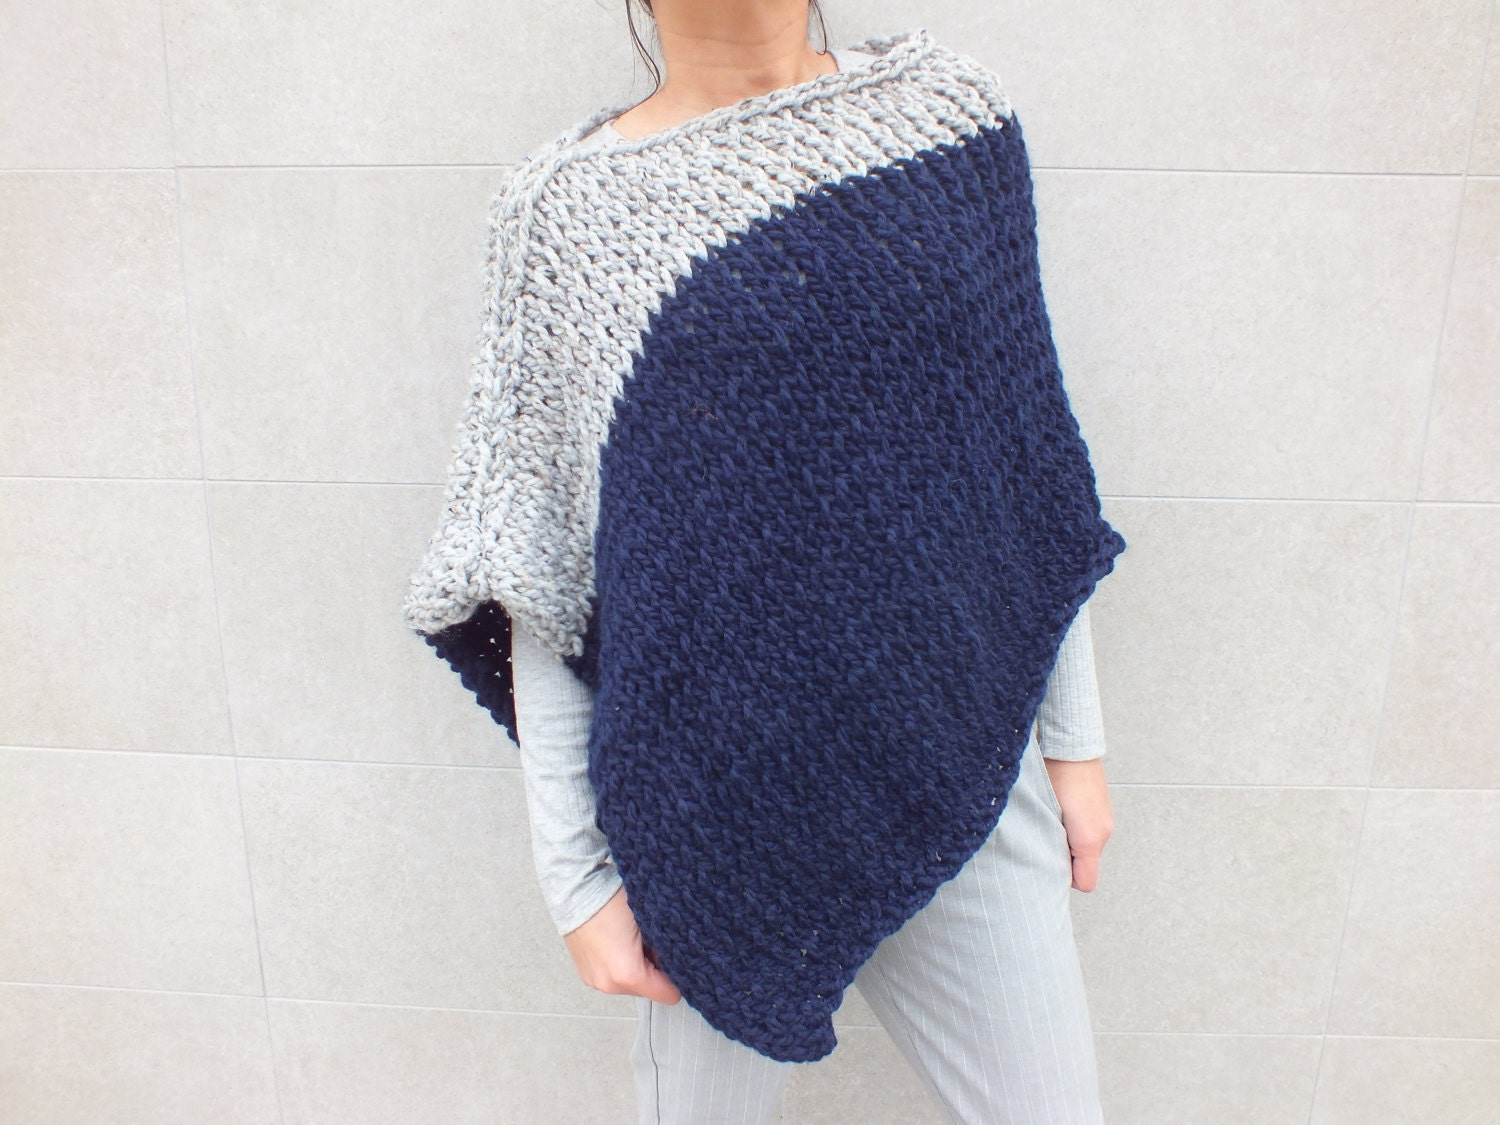 Beginner Knitting Poncho : Pattern poncho knitting patterns for ponchos easy to knit